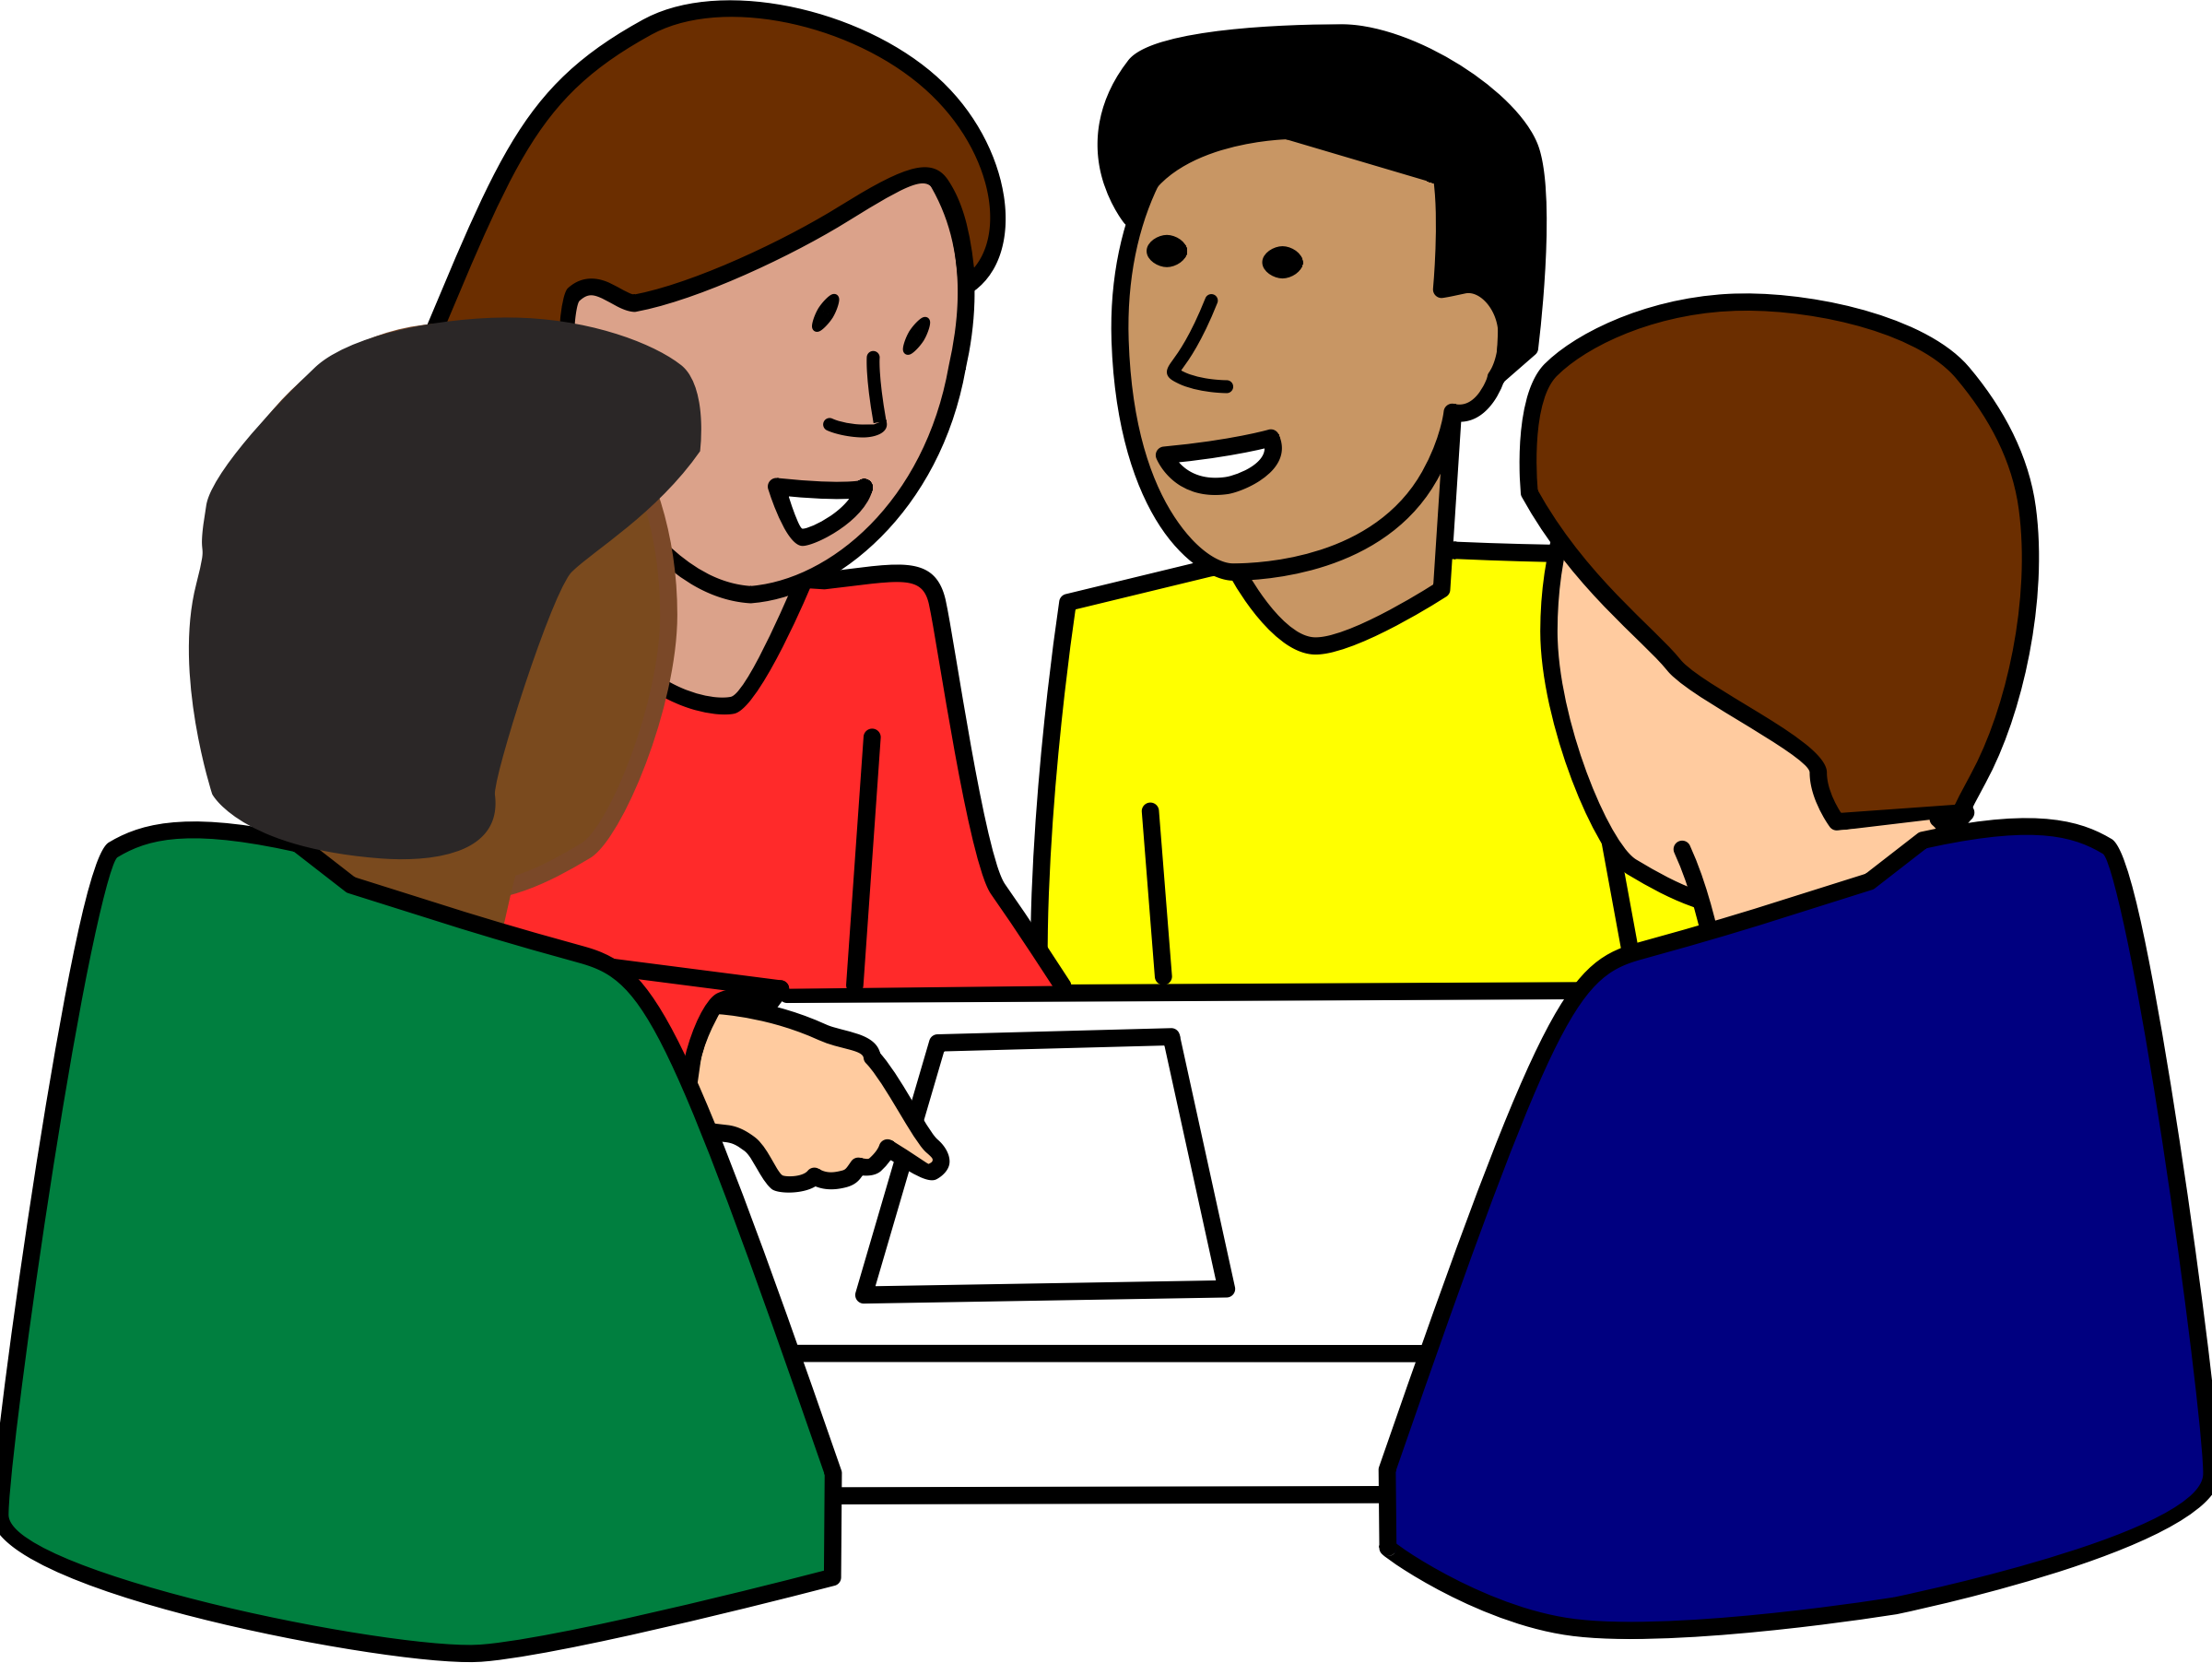 Discussion clipart student organization. Diverse group work by